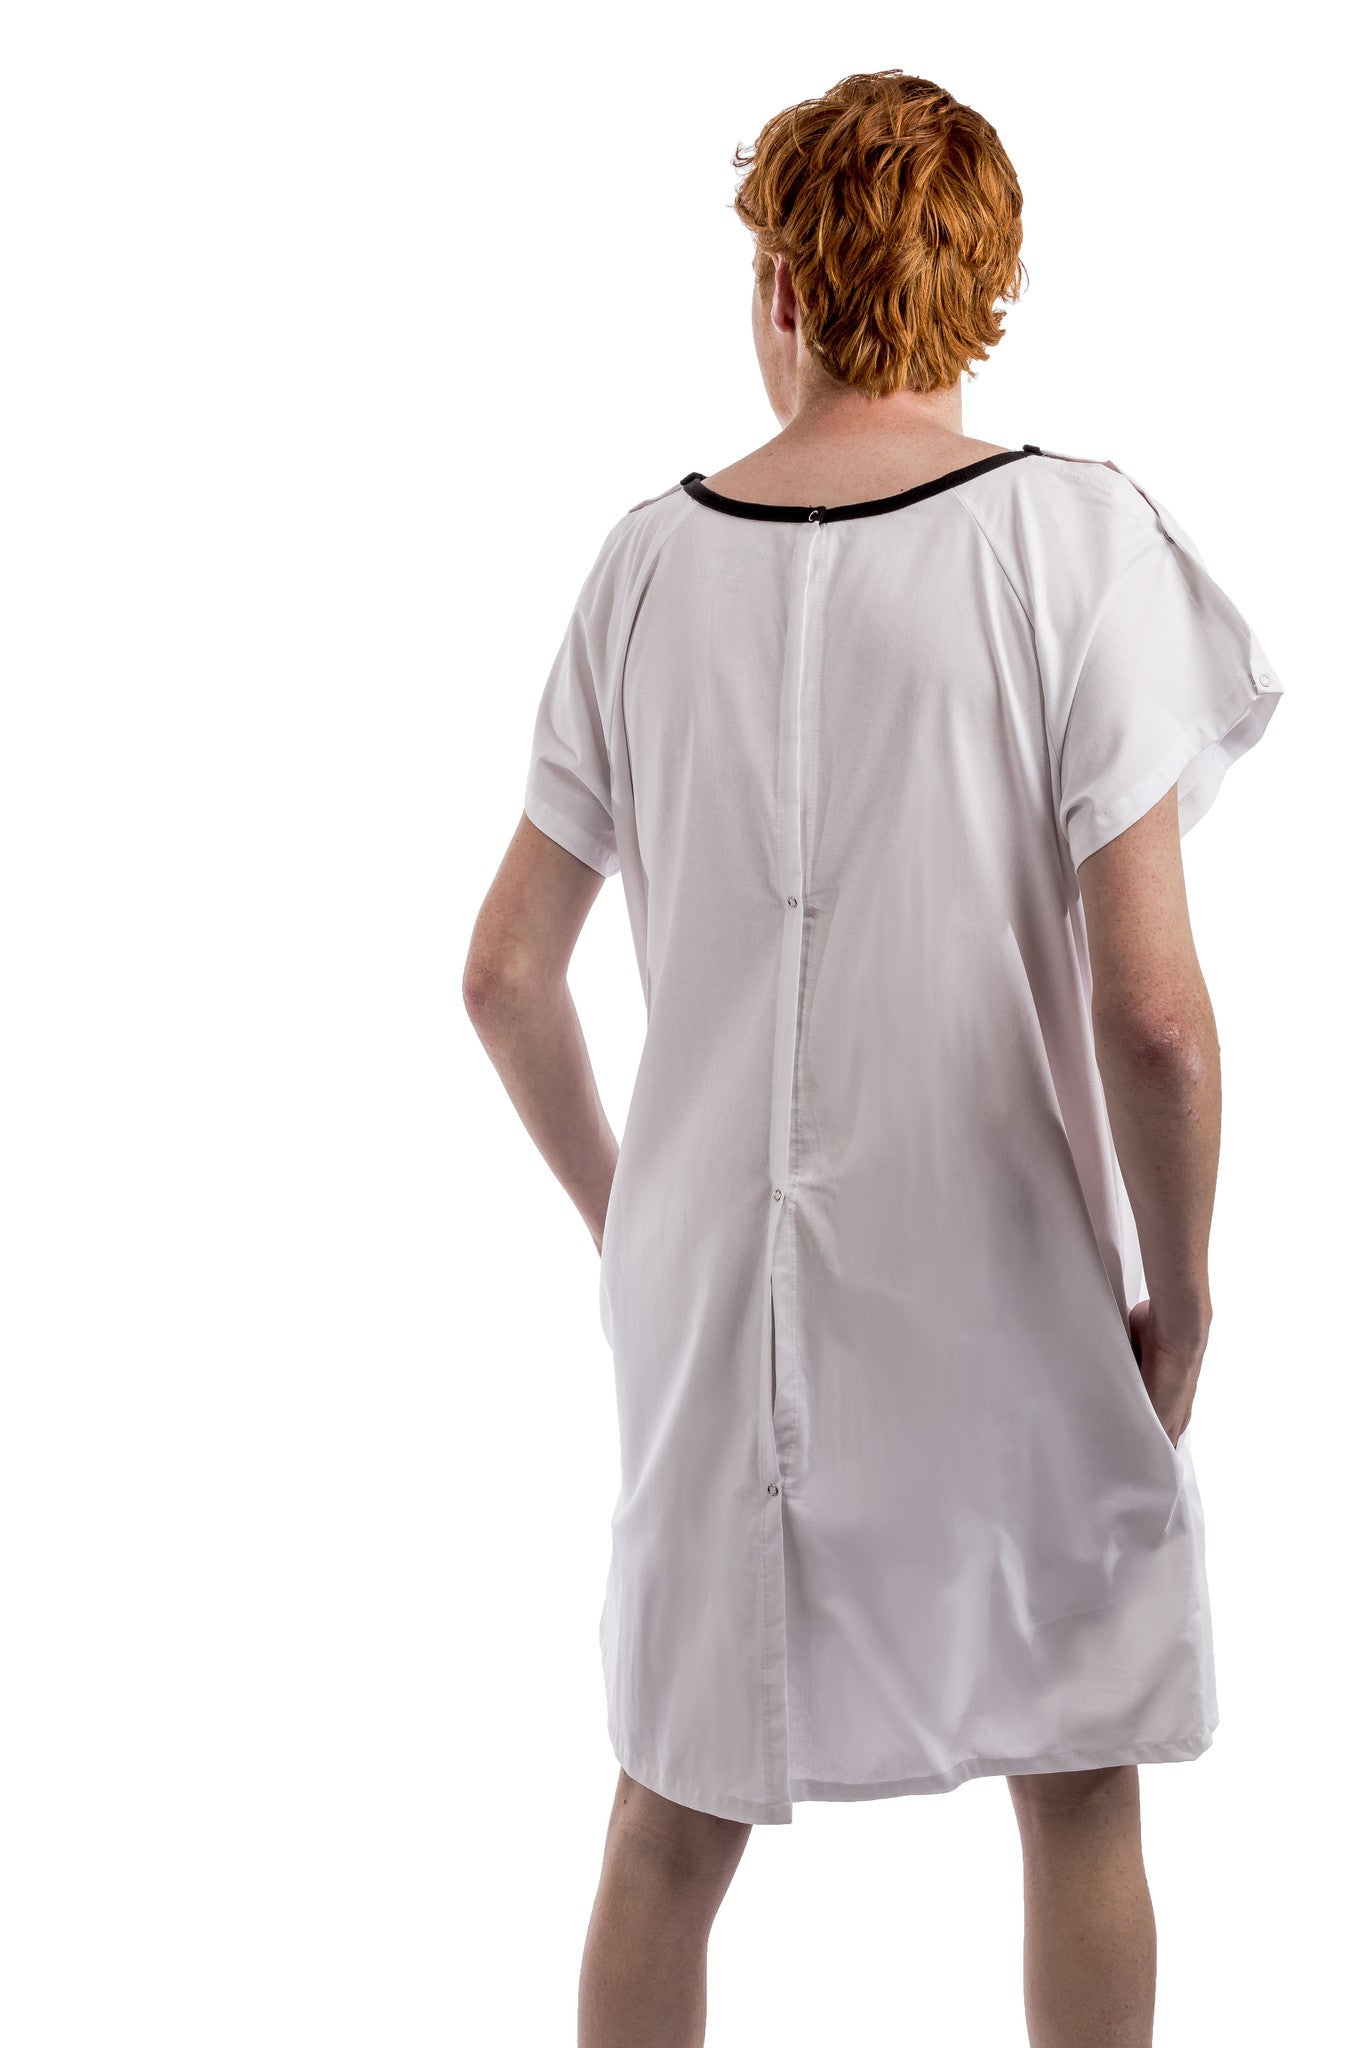 Tattoo Graphic Design on Hospital Gown – Giftgowns